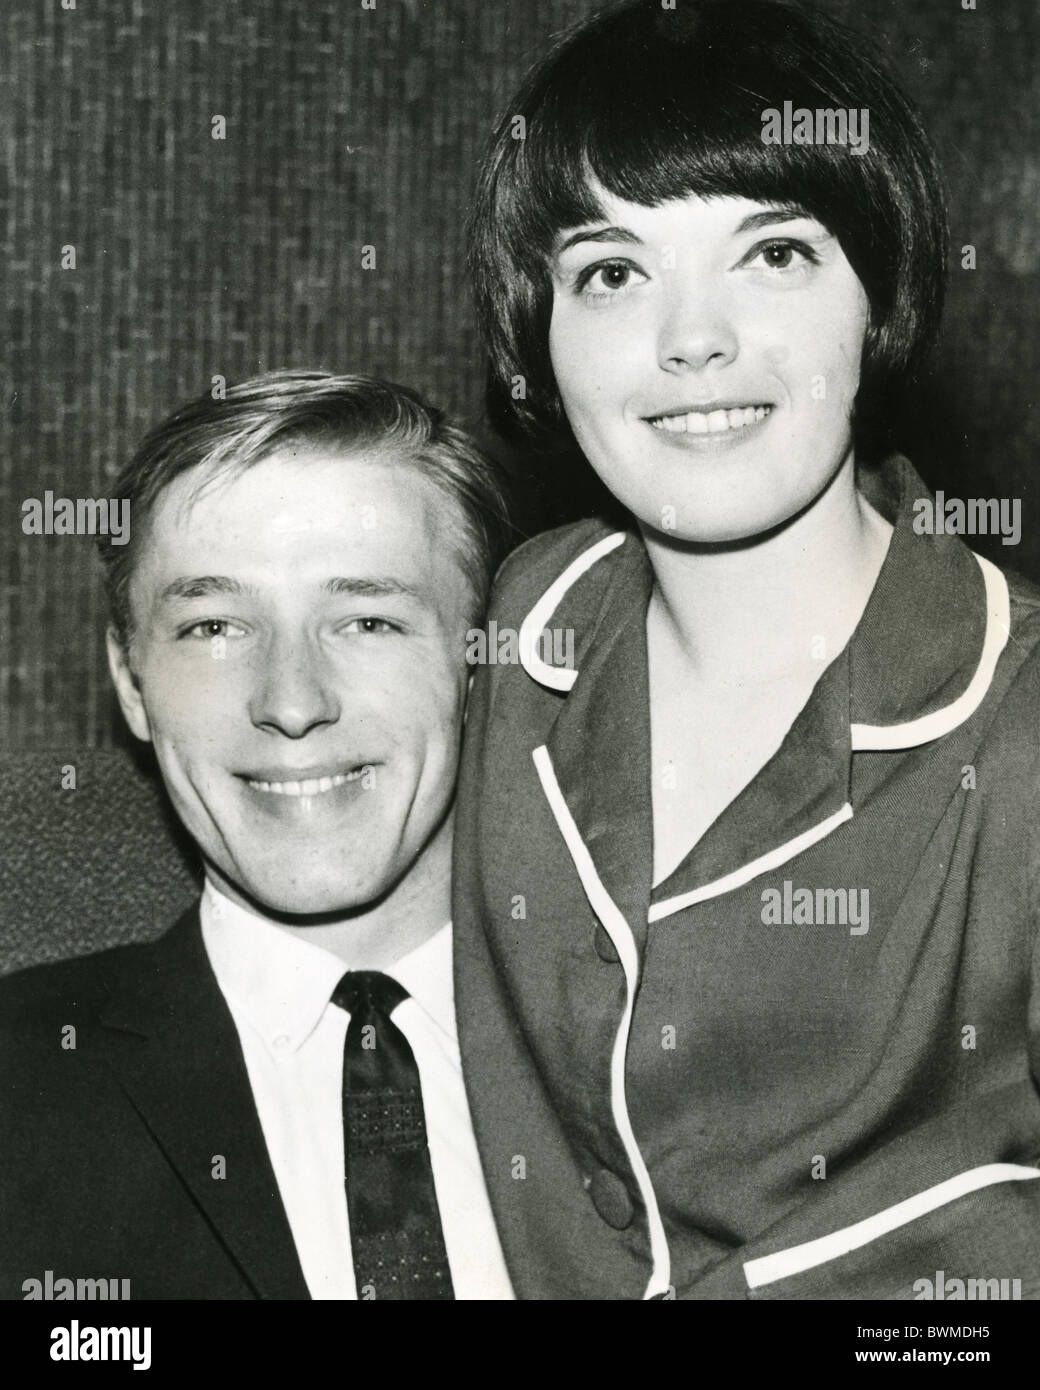 billie davis uk pop singer about stock photo royalty mike sarne and fellow uk pop singer billie davis in 1963 when they had a hit